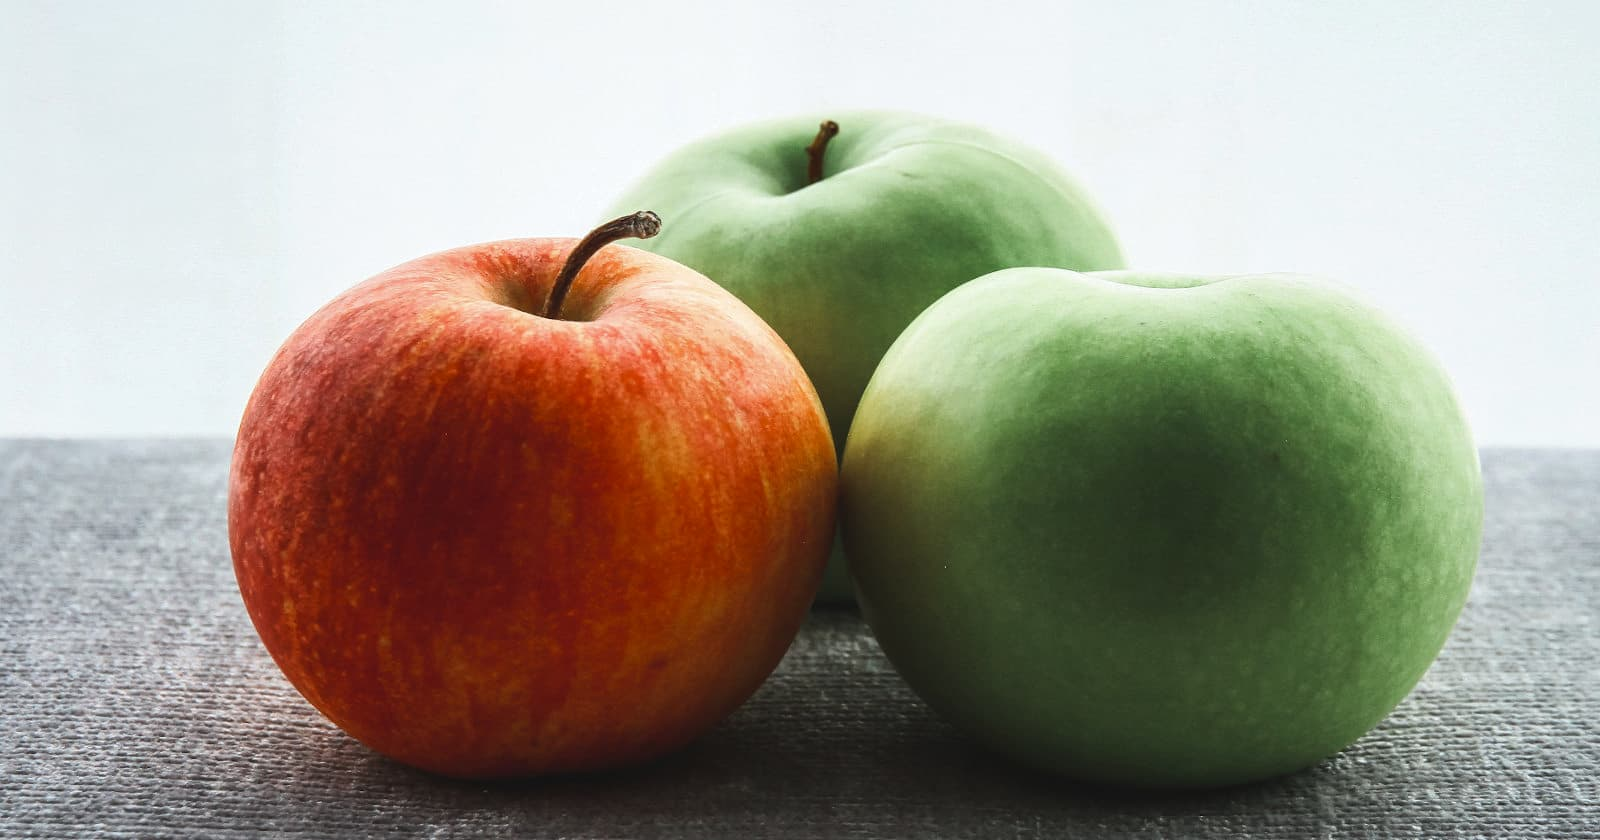 Comparing apples to apples - which game is best